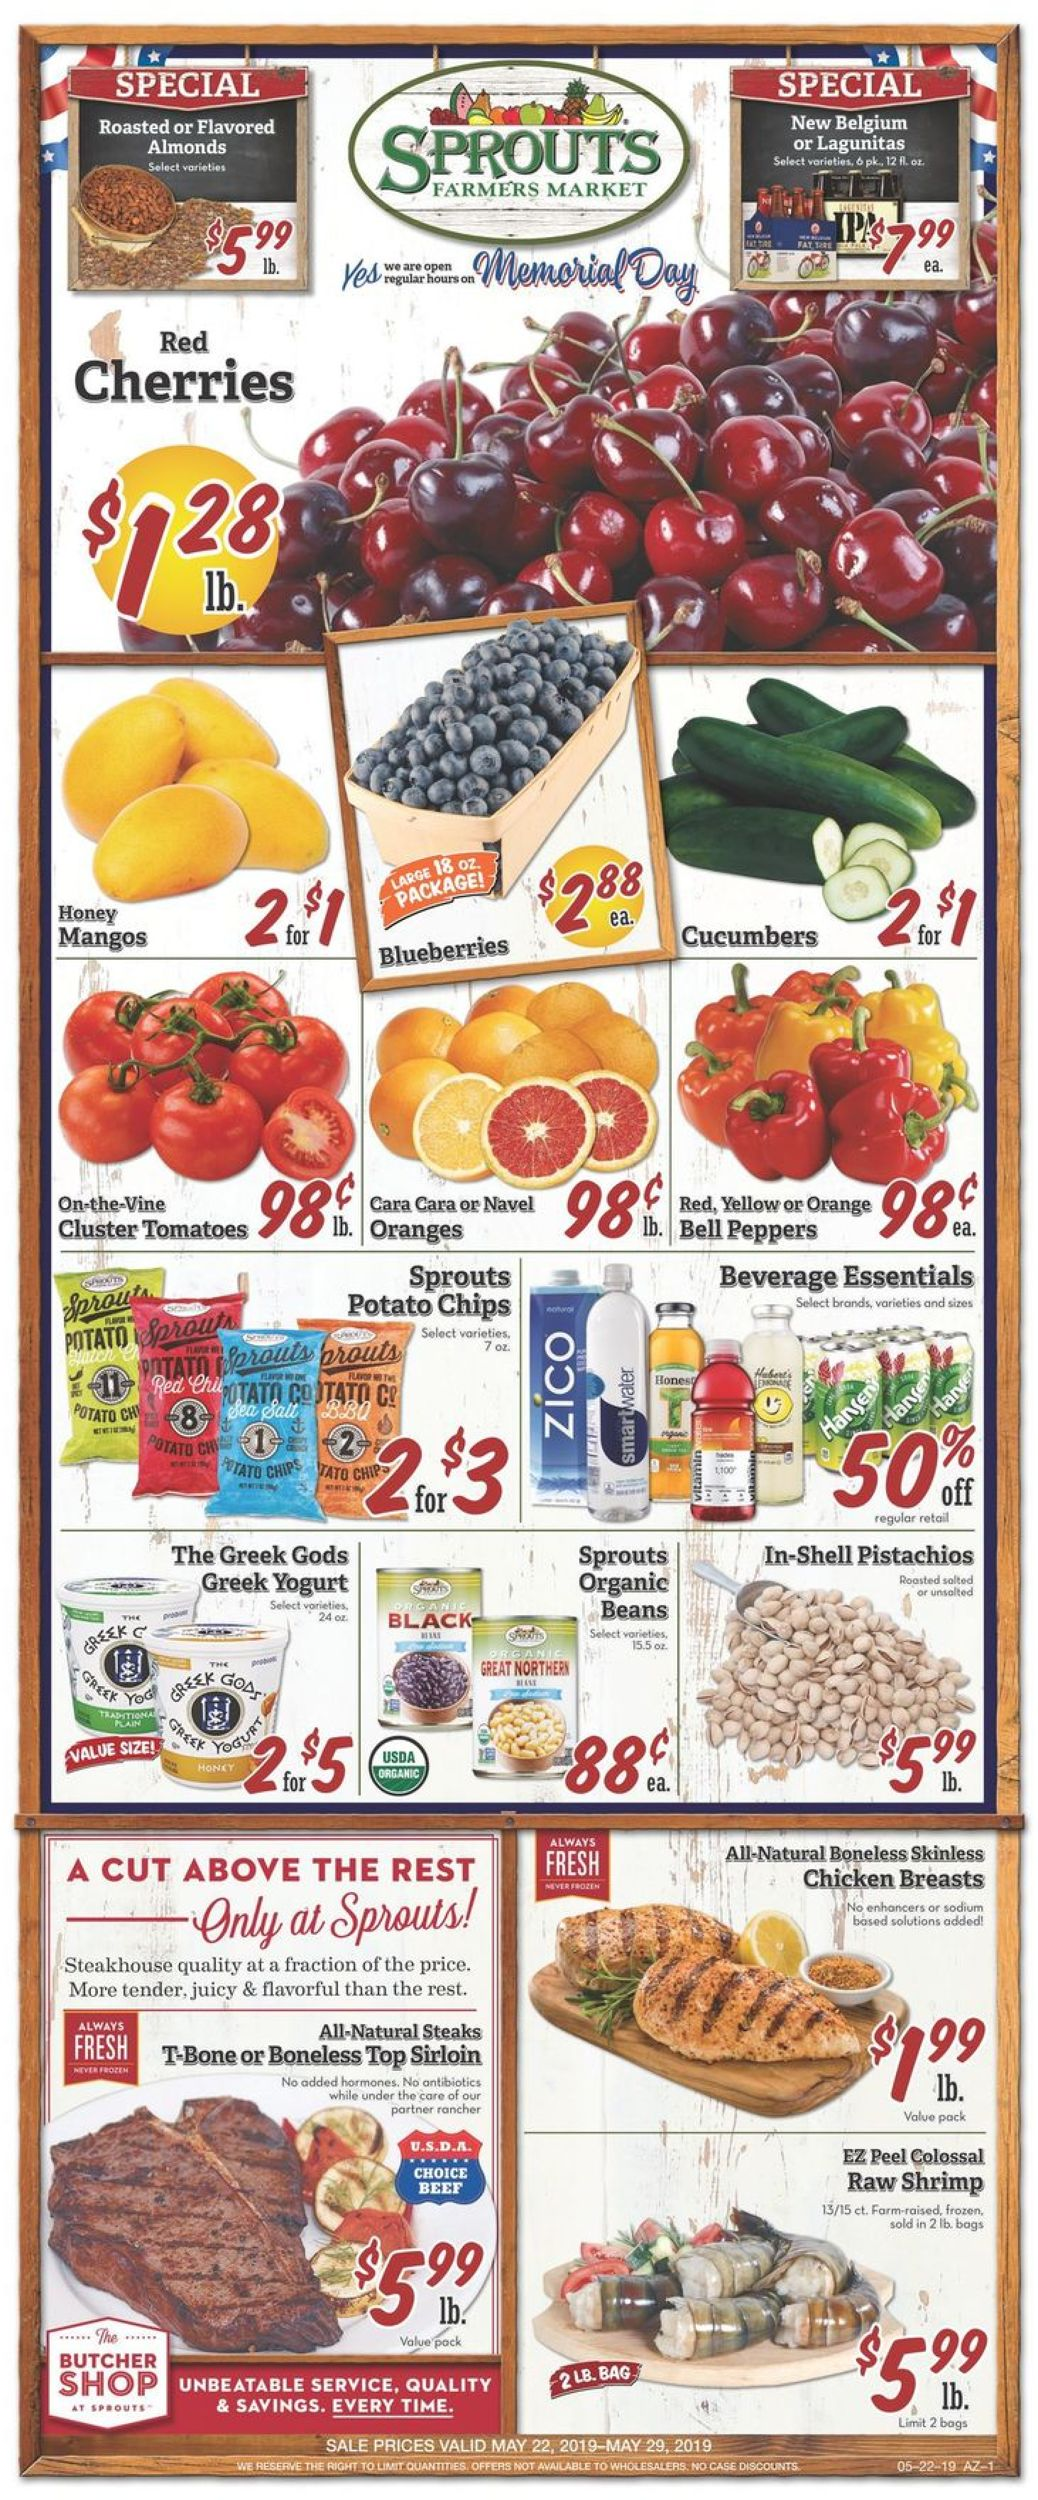 Sprouts Current weekly ad 05/22 - 05/29/2019 - frequent-ads com